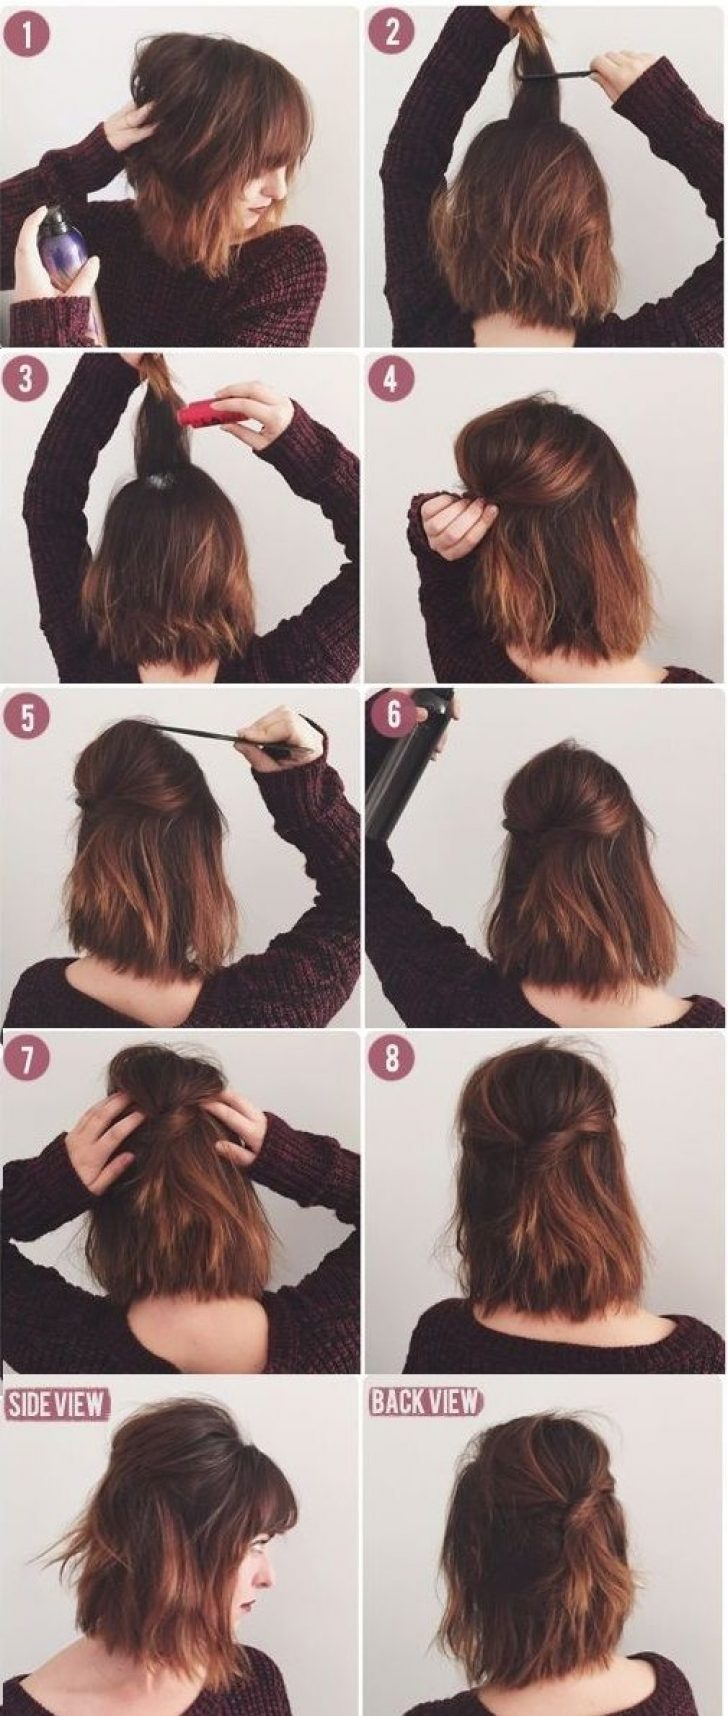 Permalink to 11 Perfect Picture Day Hairstyles For Short Hair